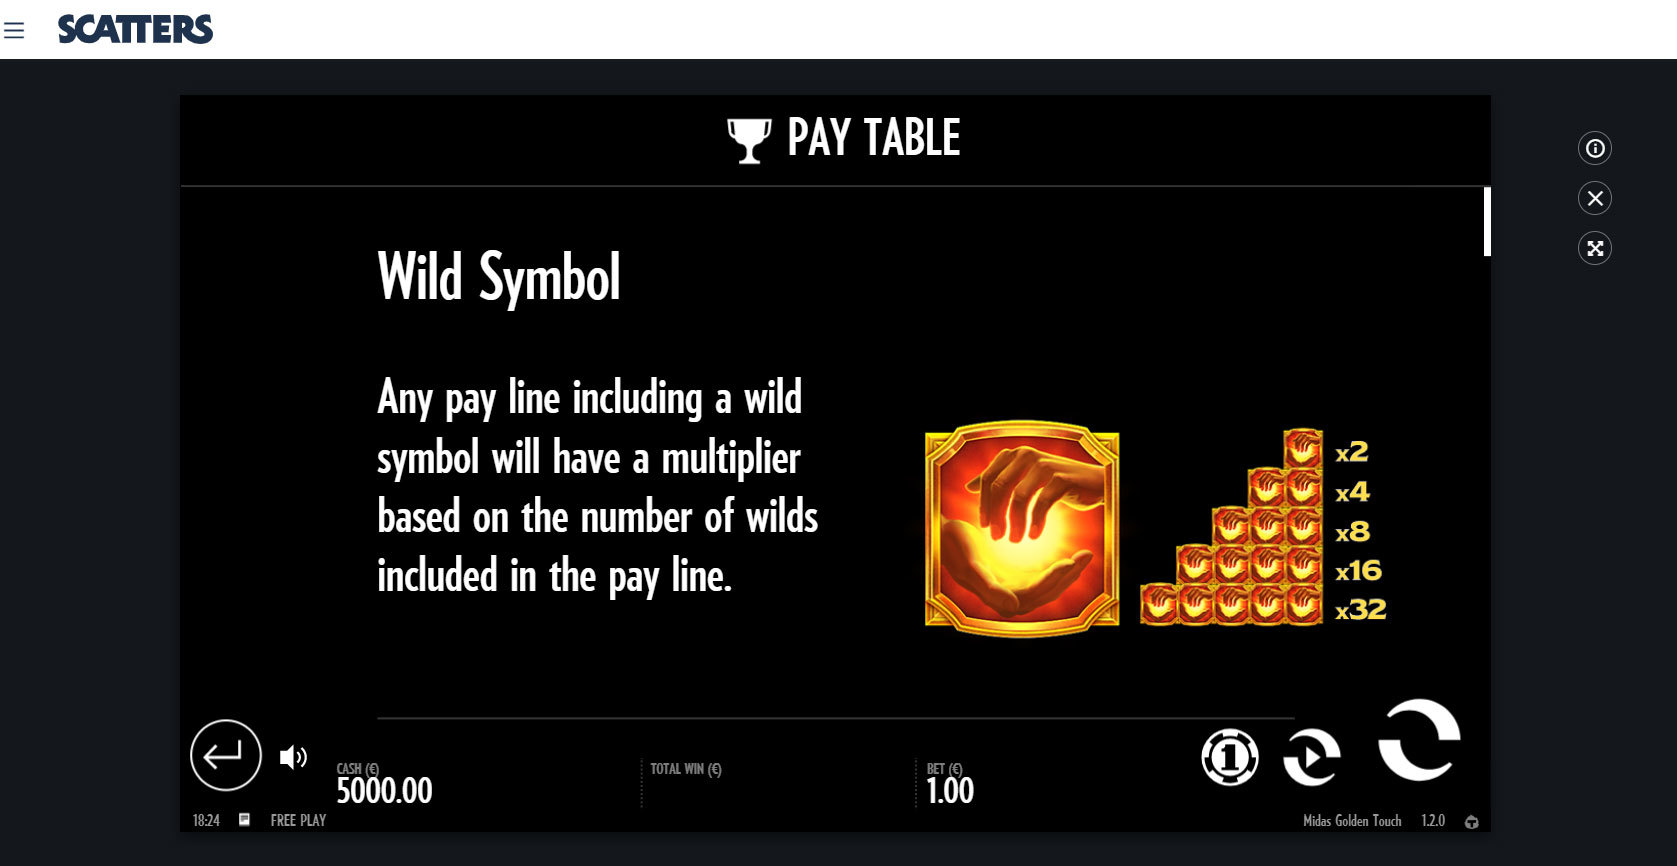 Play Midas Golden Touch by Thunderkick for Free or Real Money at Scatters Casino